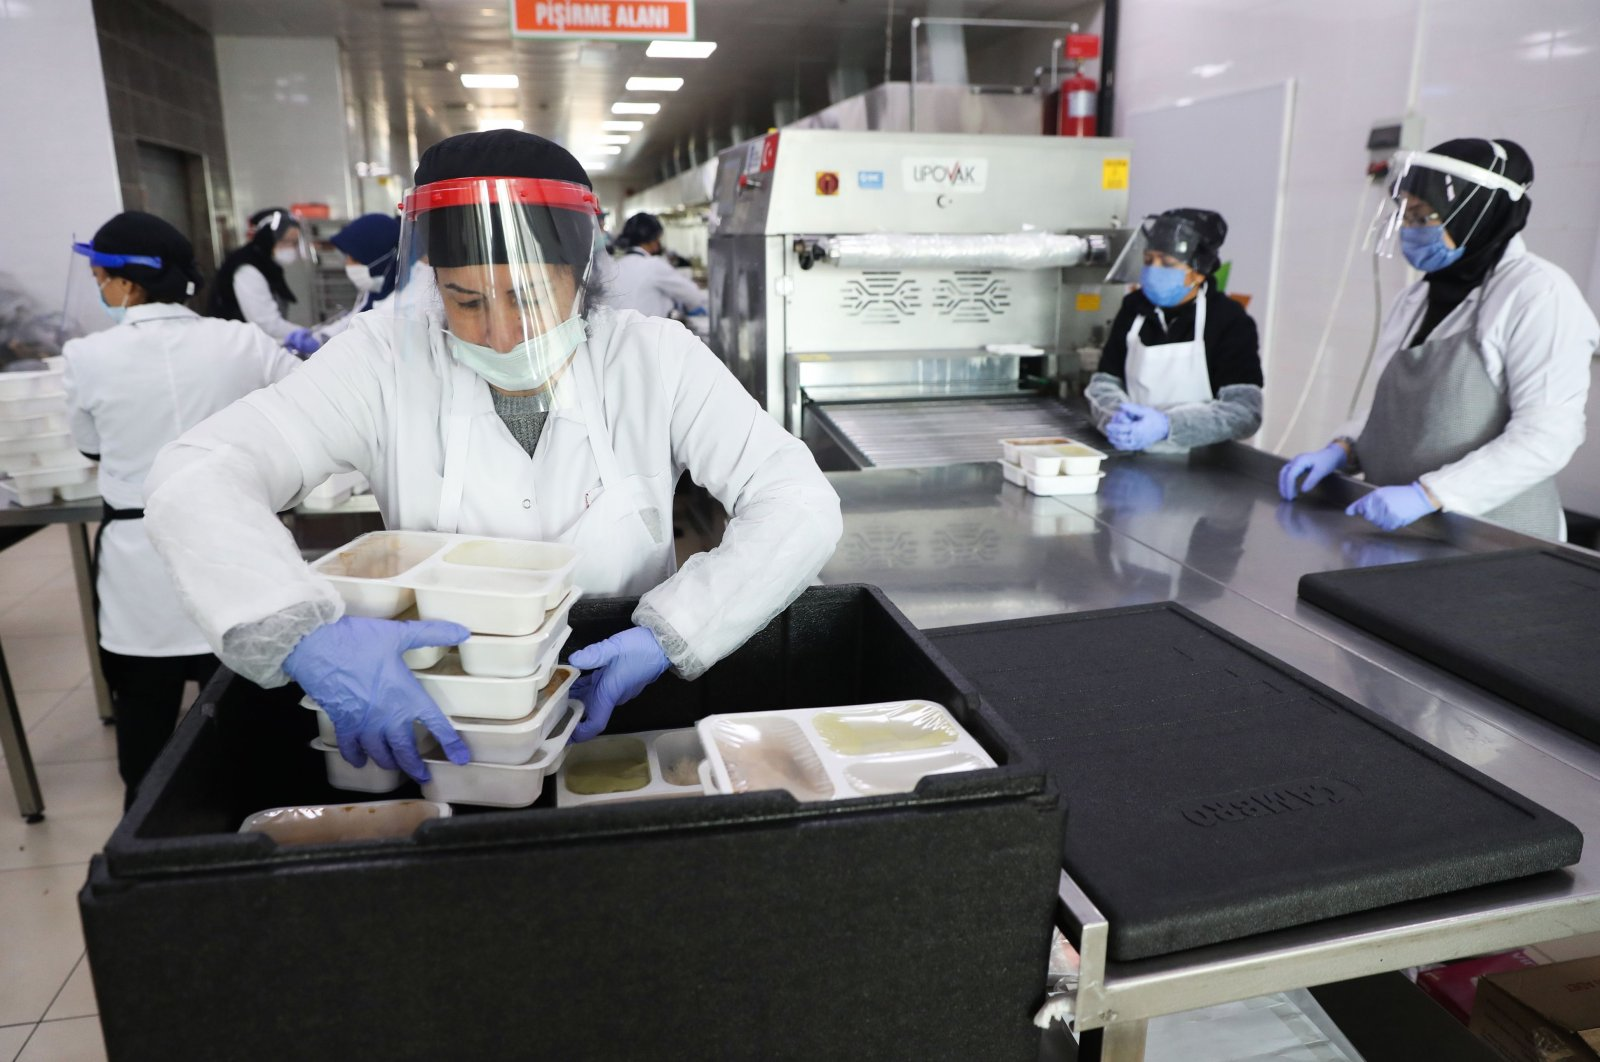 Employees prepare food in the dining production facility at the Ankara Metropolitan Municipality in Ankara, Nov. 19, 2020, as the municipality will provide free breakfast and dinner to people who are forced to quarantine for 15 days because of COVID-19 pandemic, novel coronavirus. (AFP Photo)